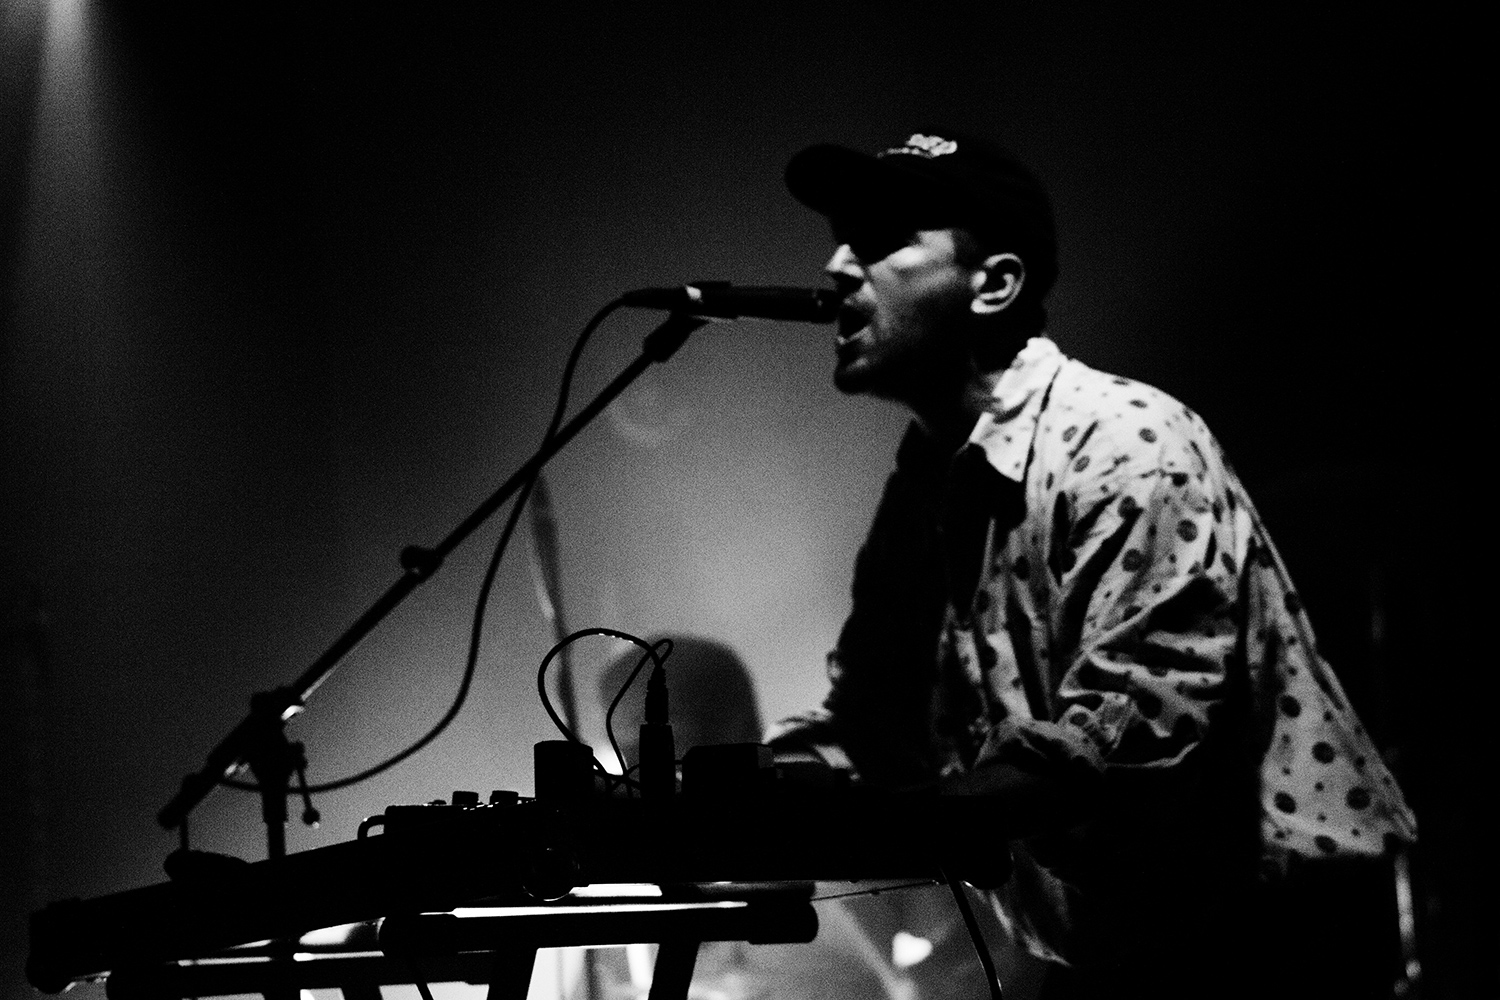 Bayacomputer by Laurent Orseau - Concert - Magasin 4 - Brussels, Belgium #3